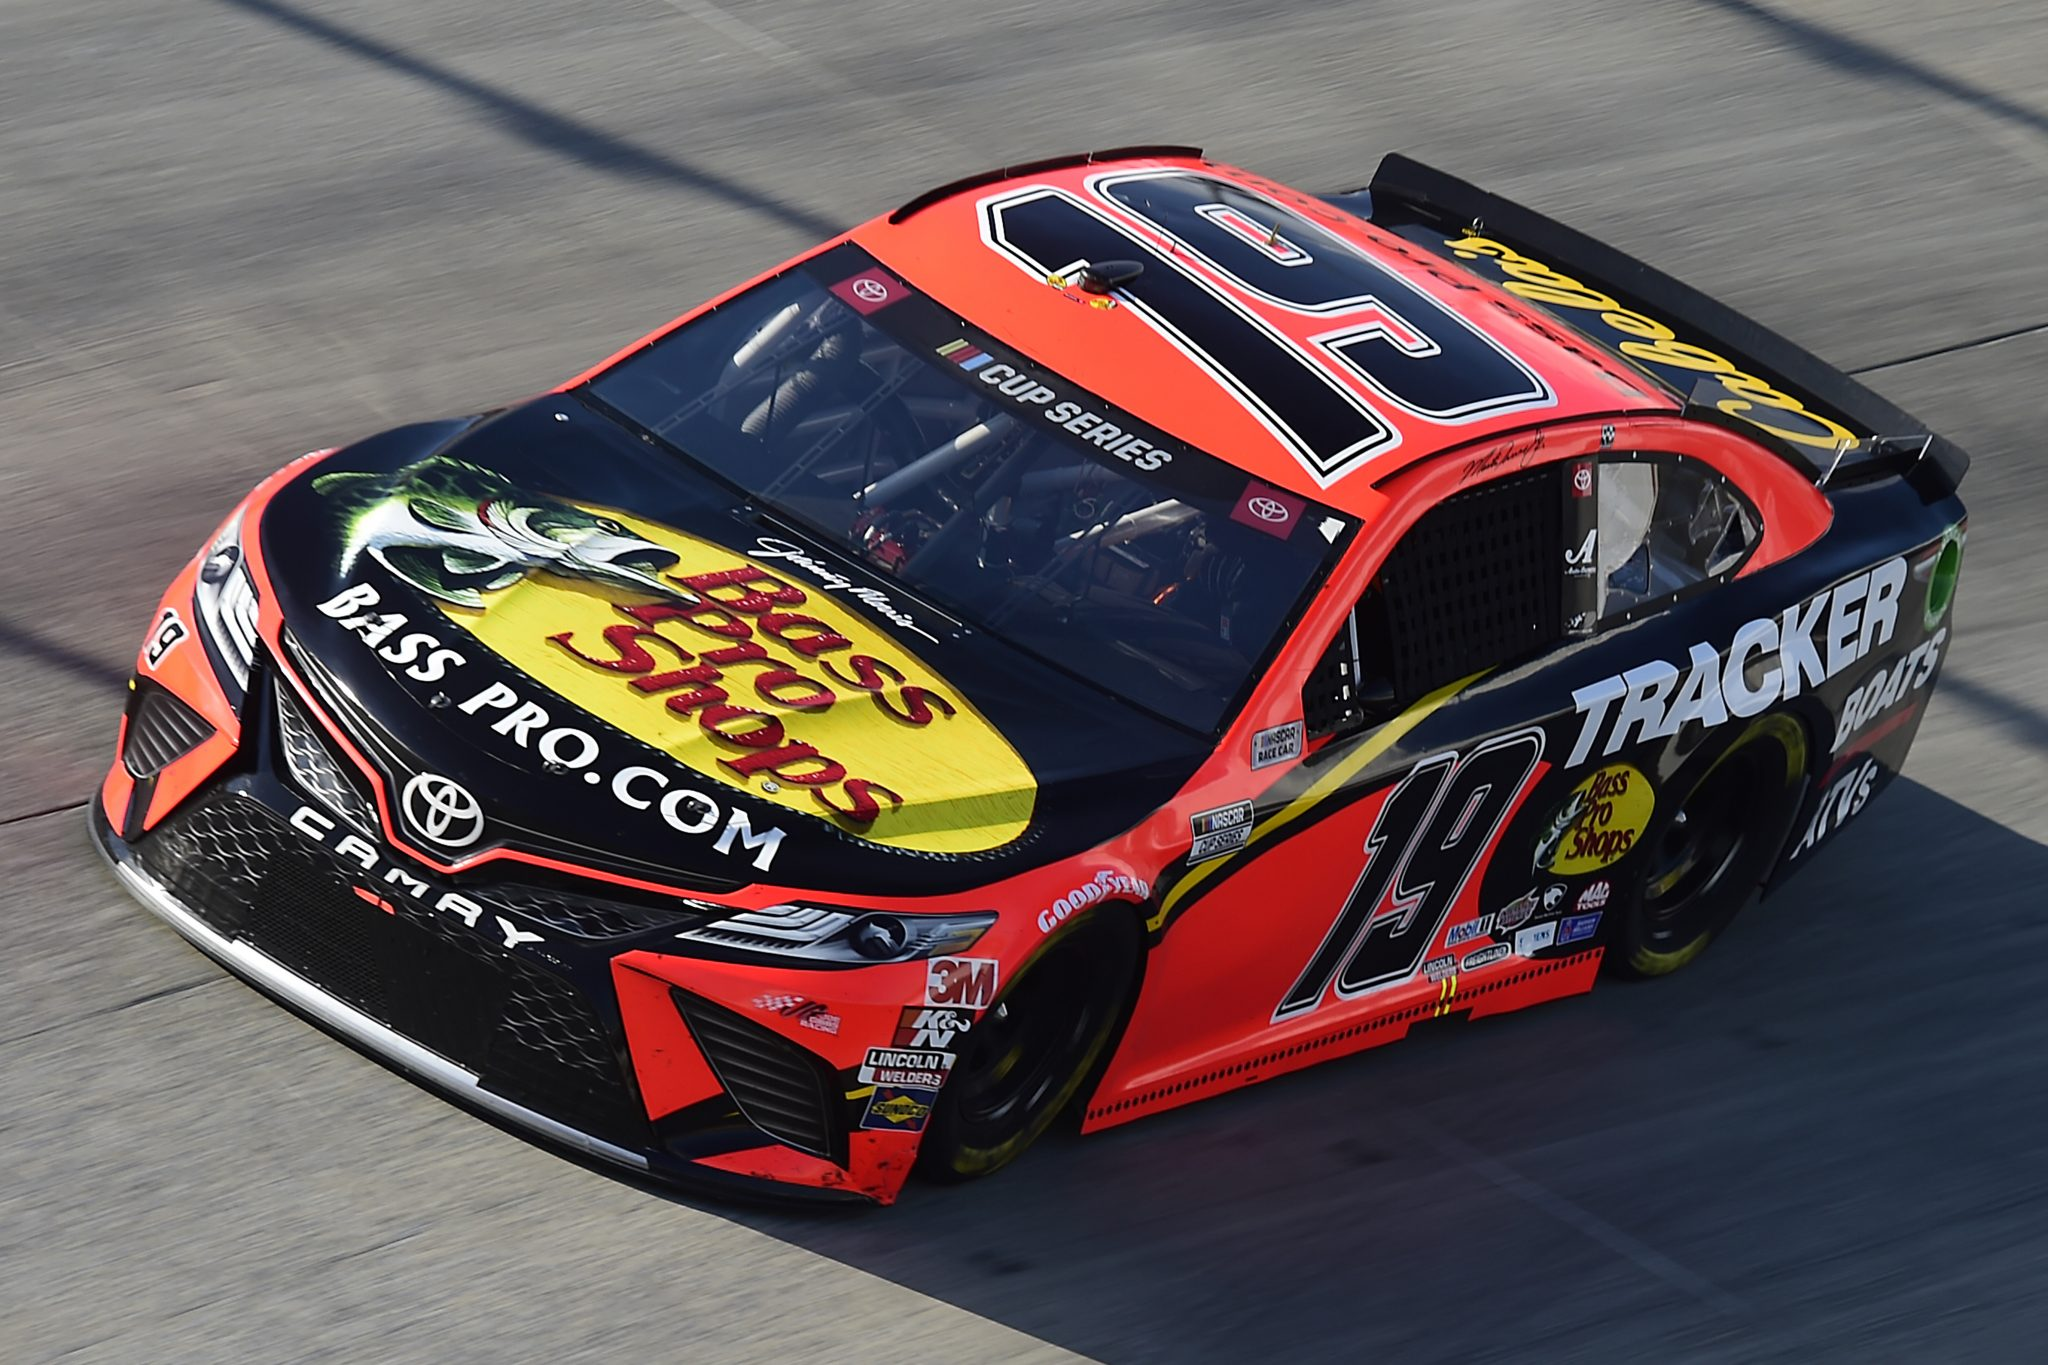 DOVER, DELAWARE - AUGUST 23: Martin Truex Jr., driver of the #19 Bass Pro Shops Toyota, drives during the NASCAR Cup Series Drydene 311 at Dover International Speedway on August 23, 2020 in Dover, Delaware. (Photo by Jared C. Tilton/Getty Images) | Getty Images